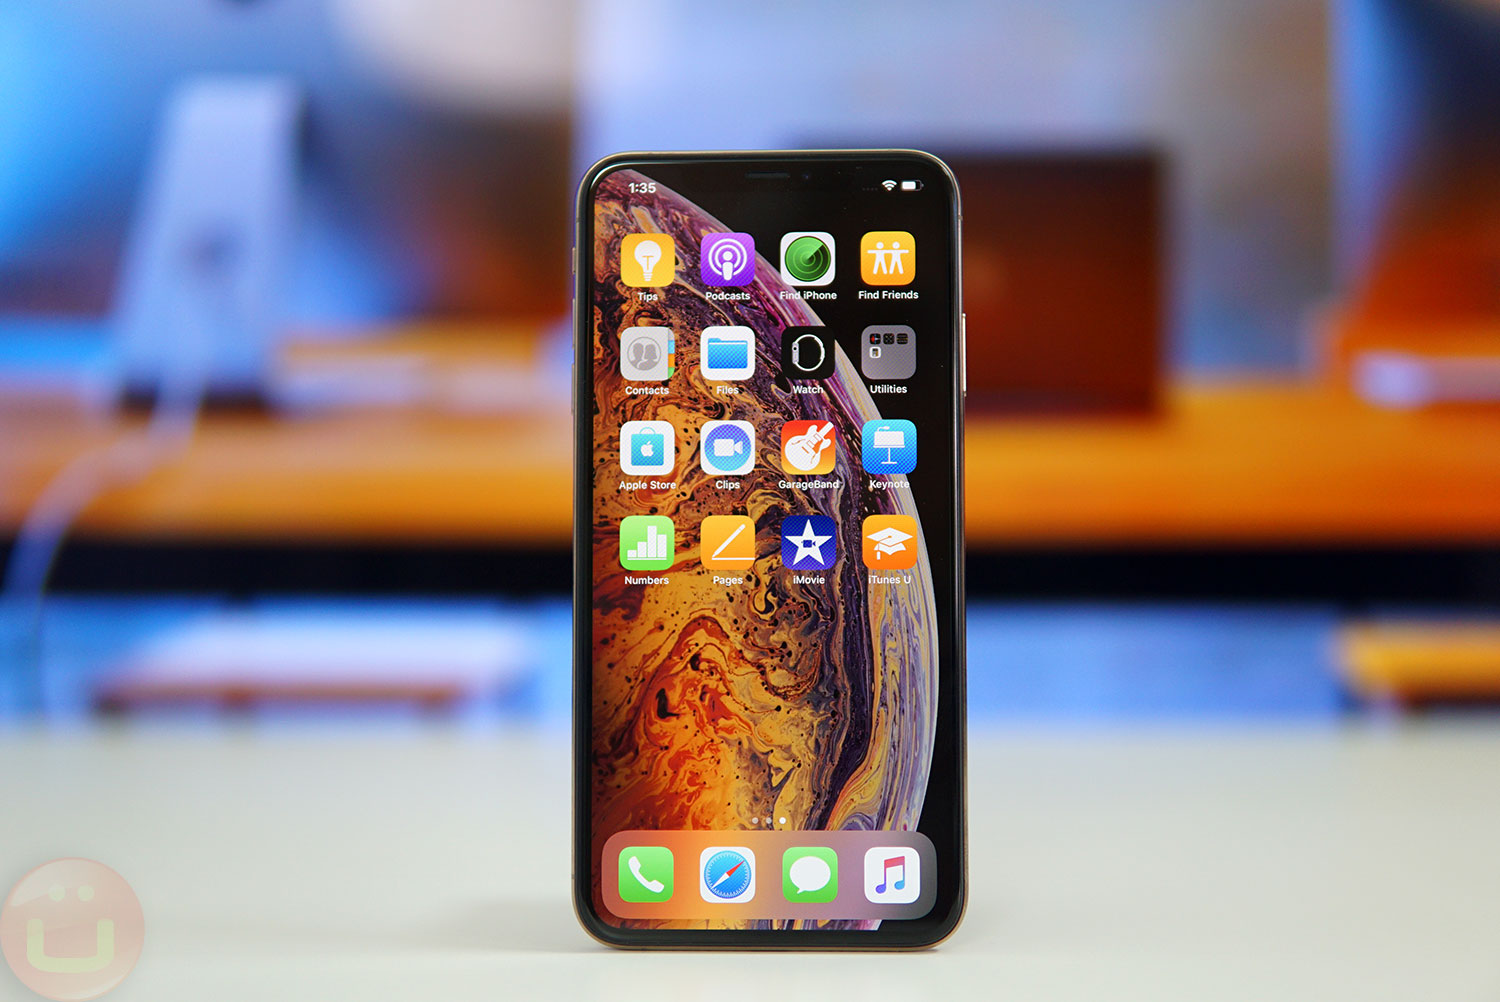 How To Reset The iPhone (Hard, Soft and For All iOS Versions